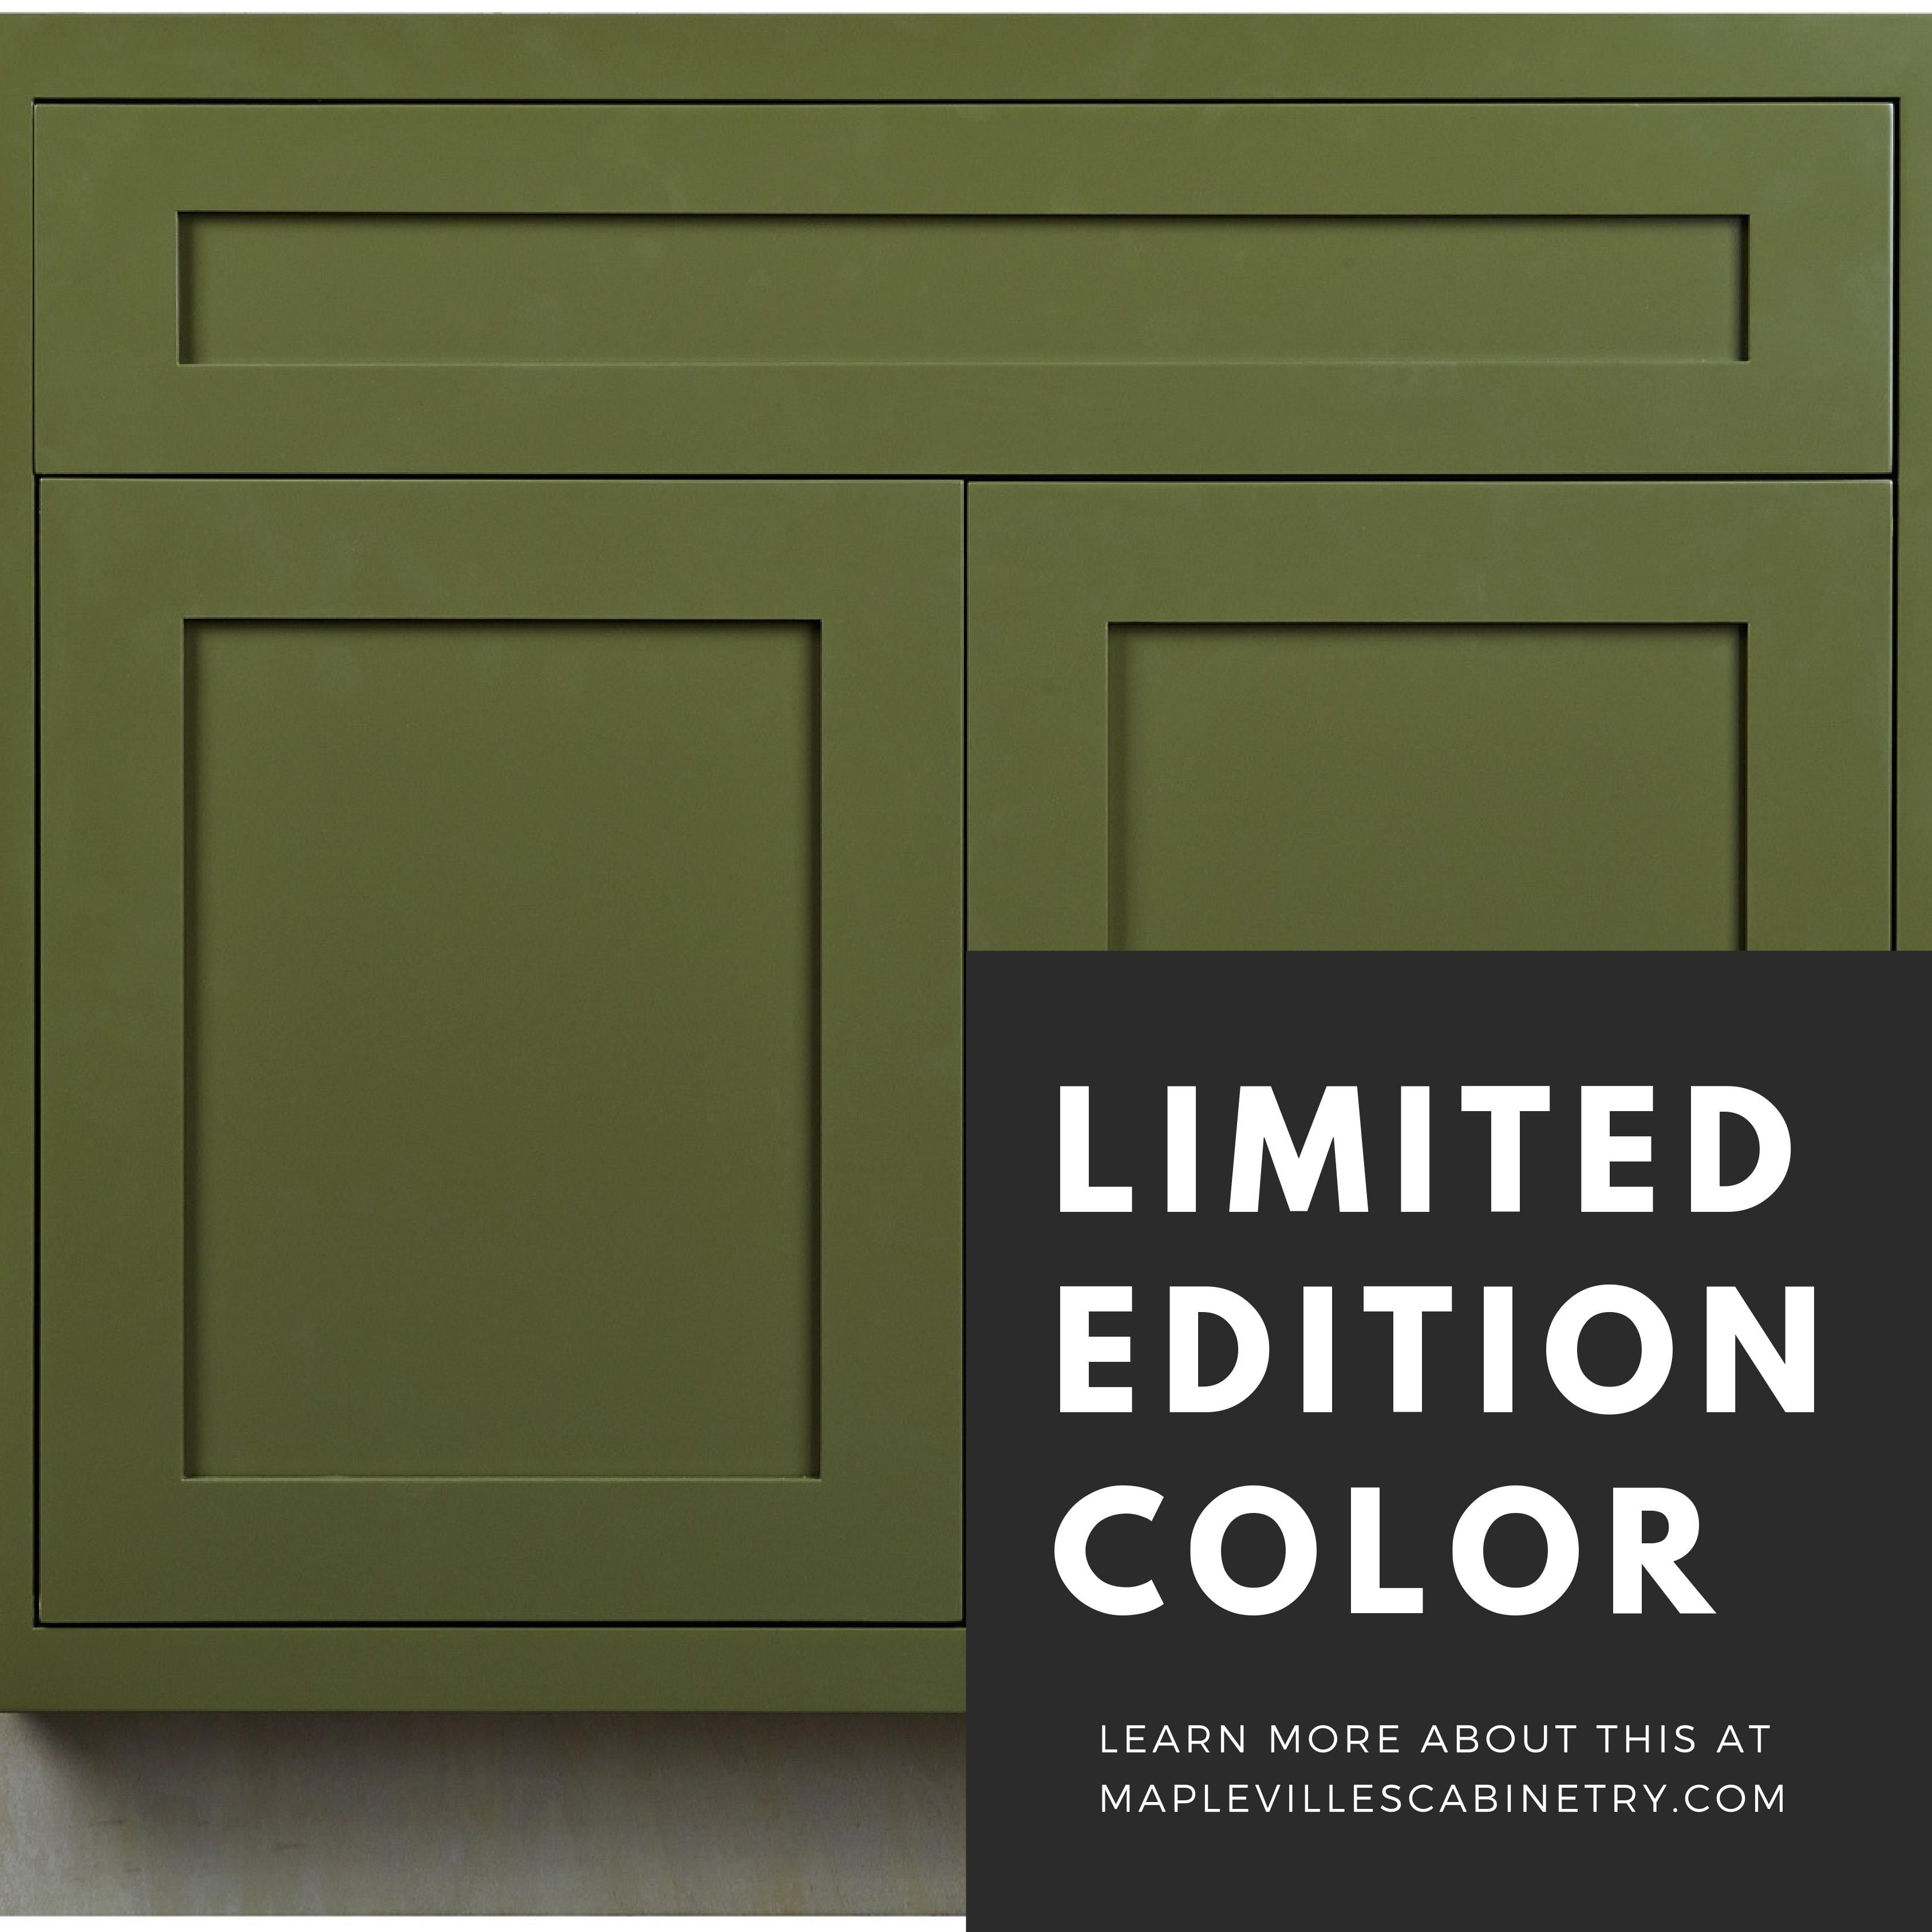 Shaker Style Cabinets Limited Edition Color Shaker Style Cabinets Inset Cabinets Buy Kitchen Cabinets